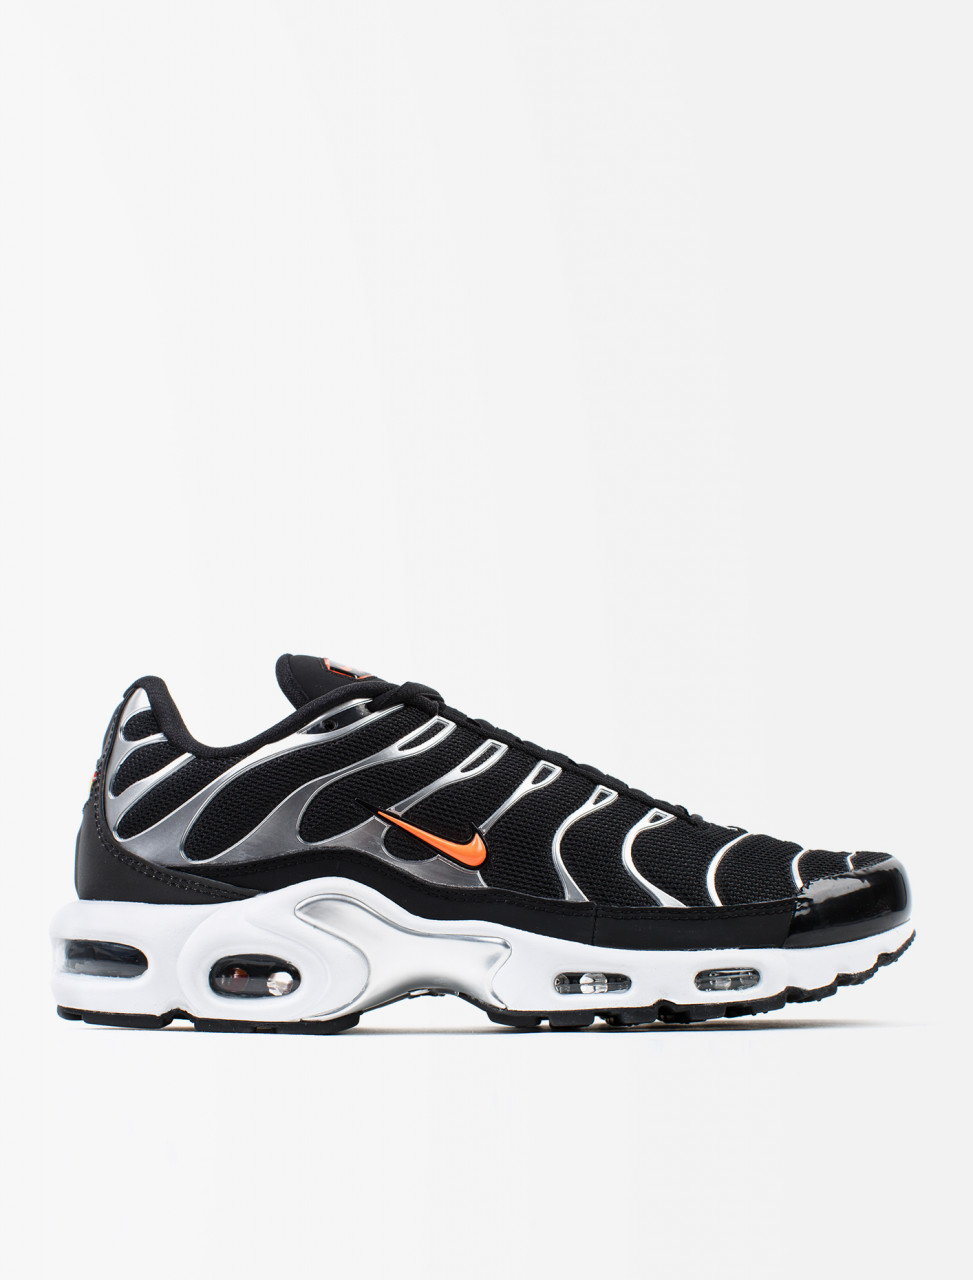 reputable site f383e fec52 Air Max Plus TN SE Sneaker